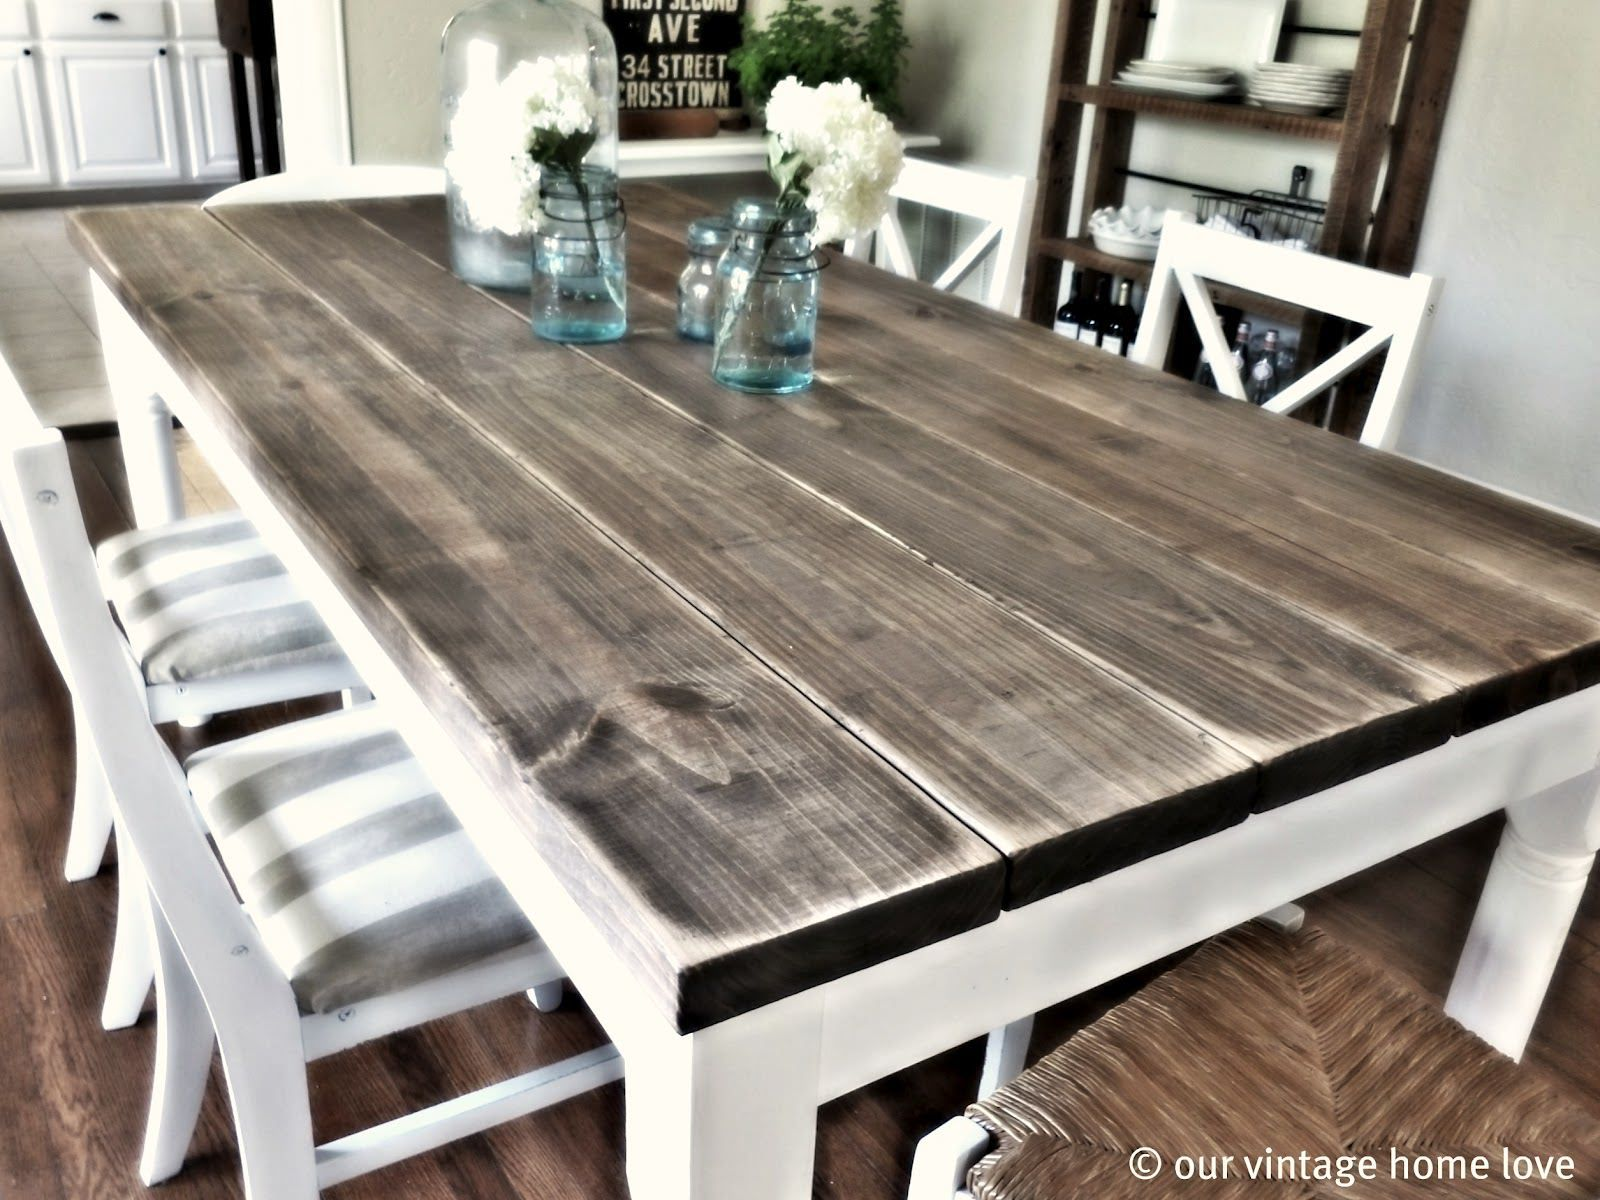 Free Custom Farmhouse Dining Table  Ideas For The House Prepossessing Farmhouse Dining Room Furniture Design Decoration